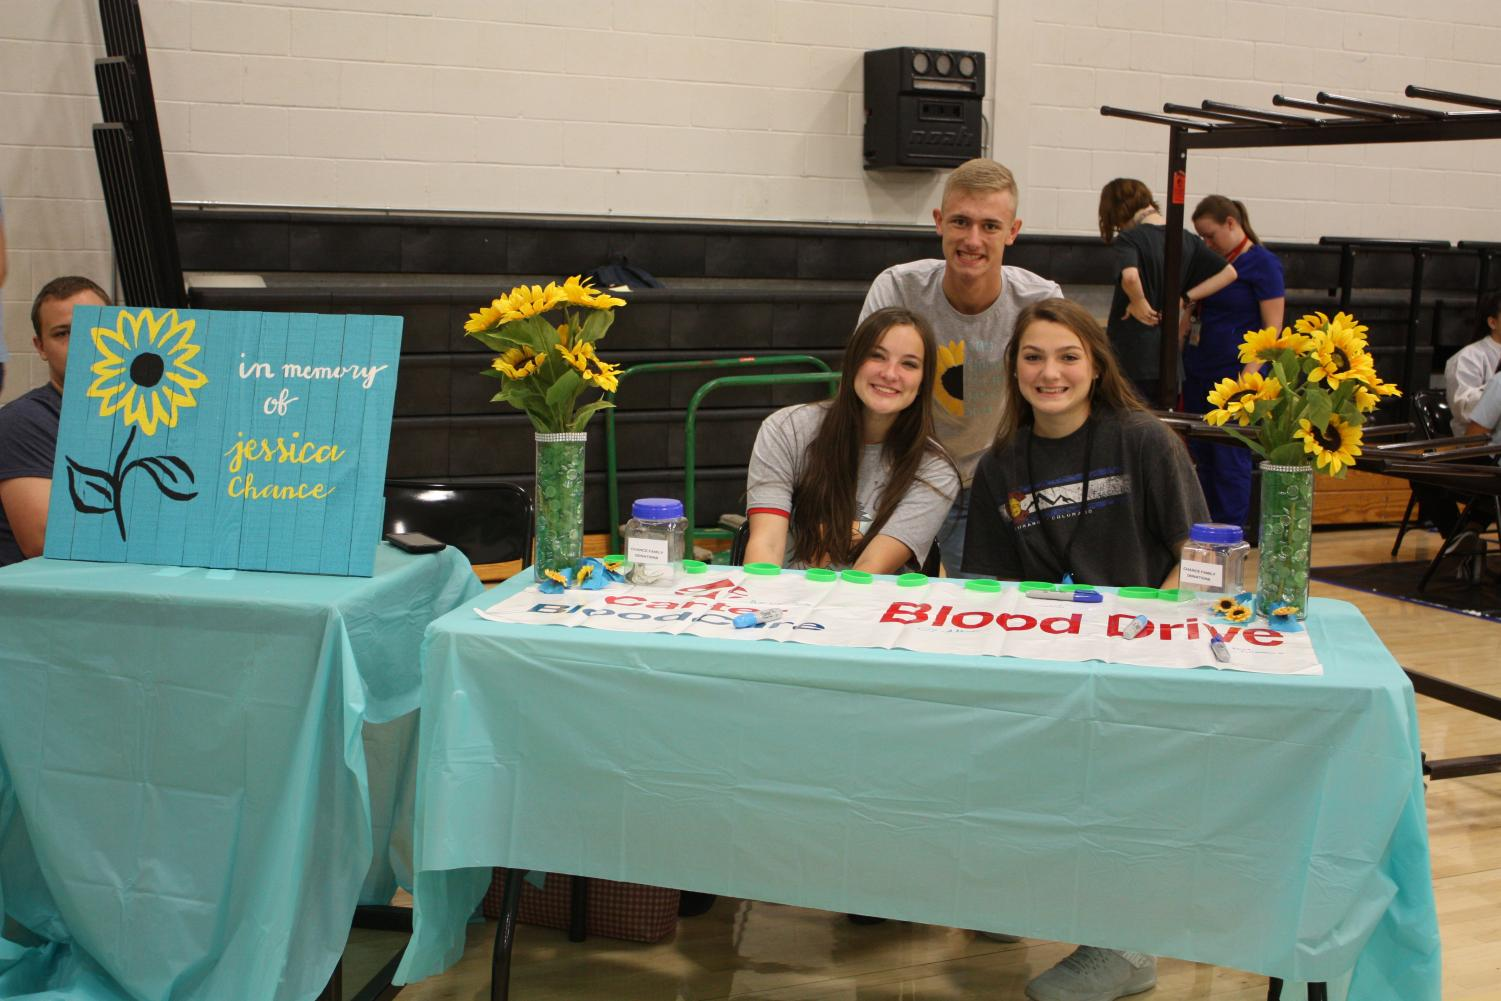 Here are Seniors Killian Mcdonald- Boyer, Allison Roecker and Reed Ludwig running the booth at the blood drive.